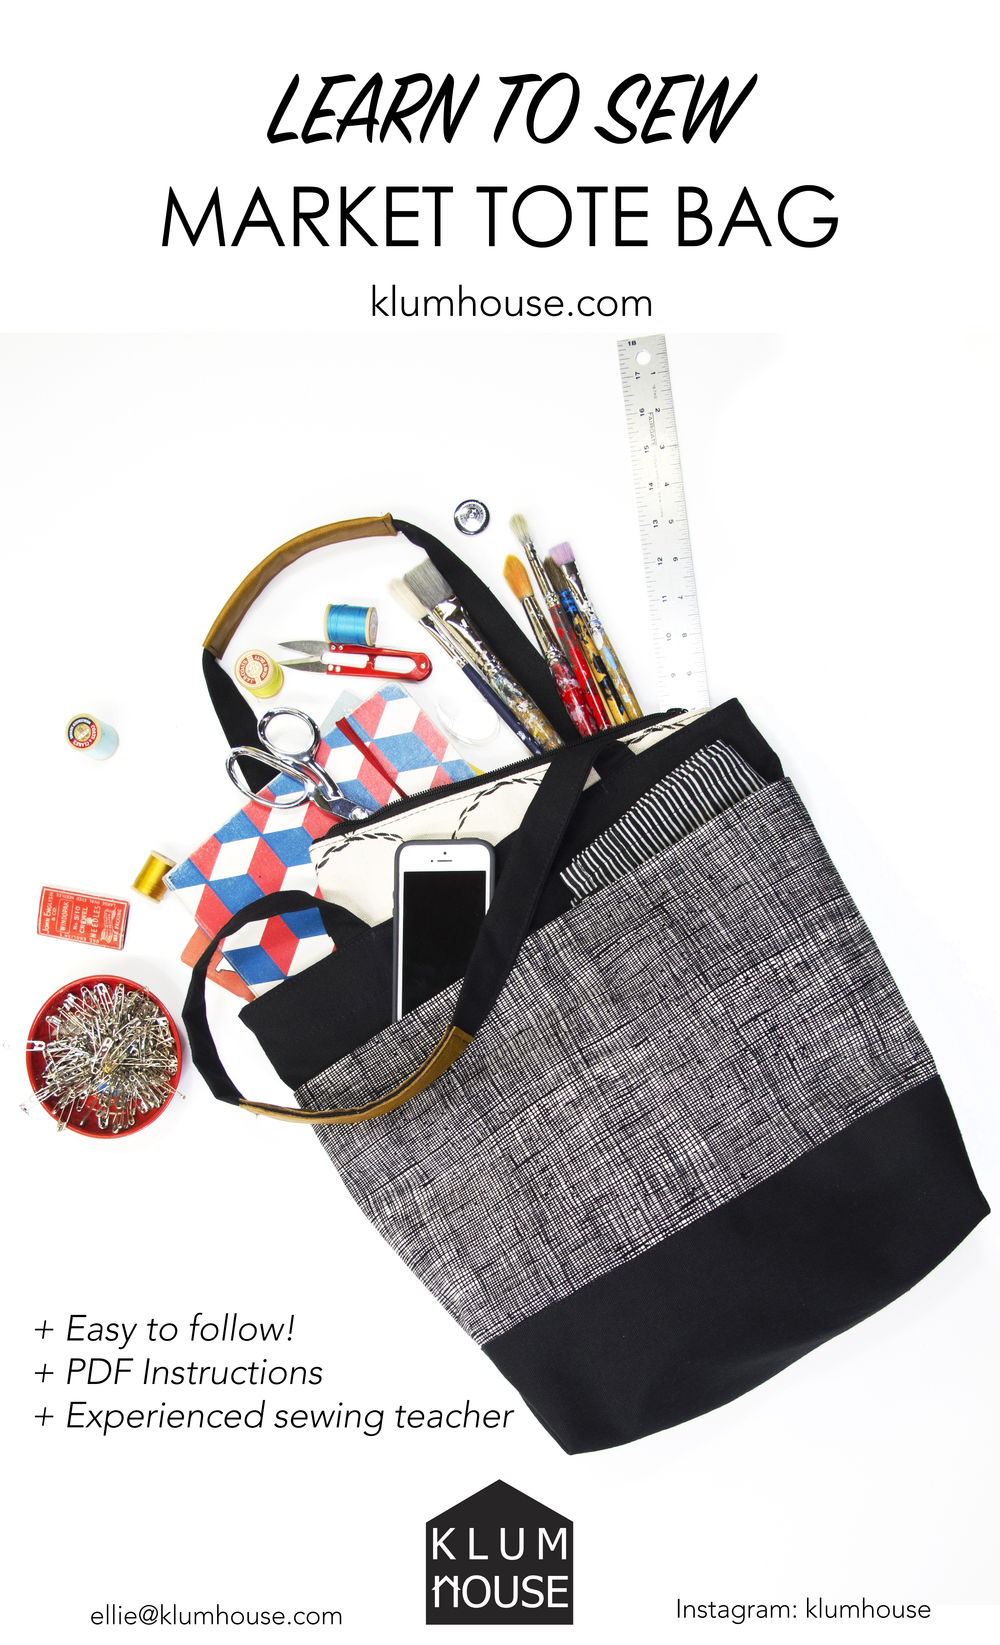 Learn to Sew: Market Tote Bag PDF Instructions